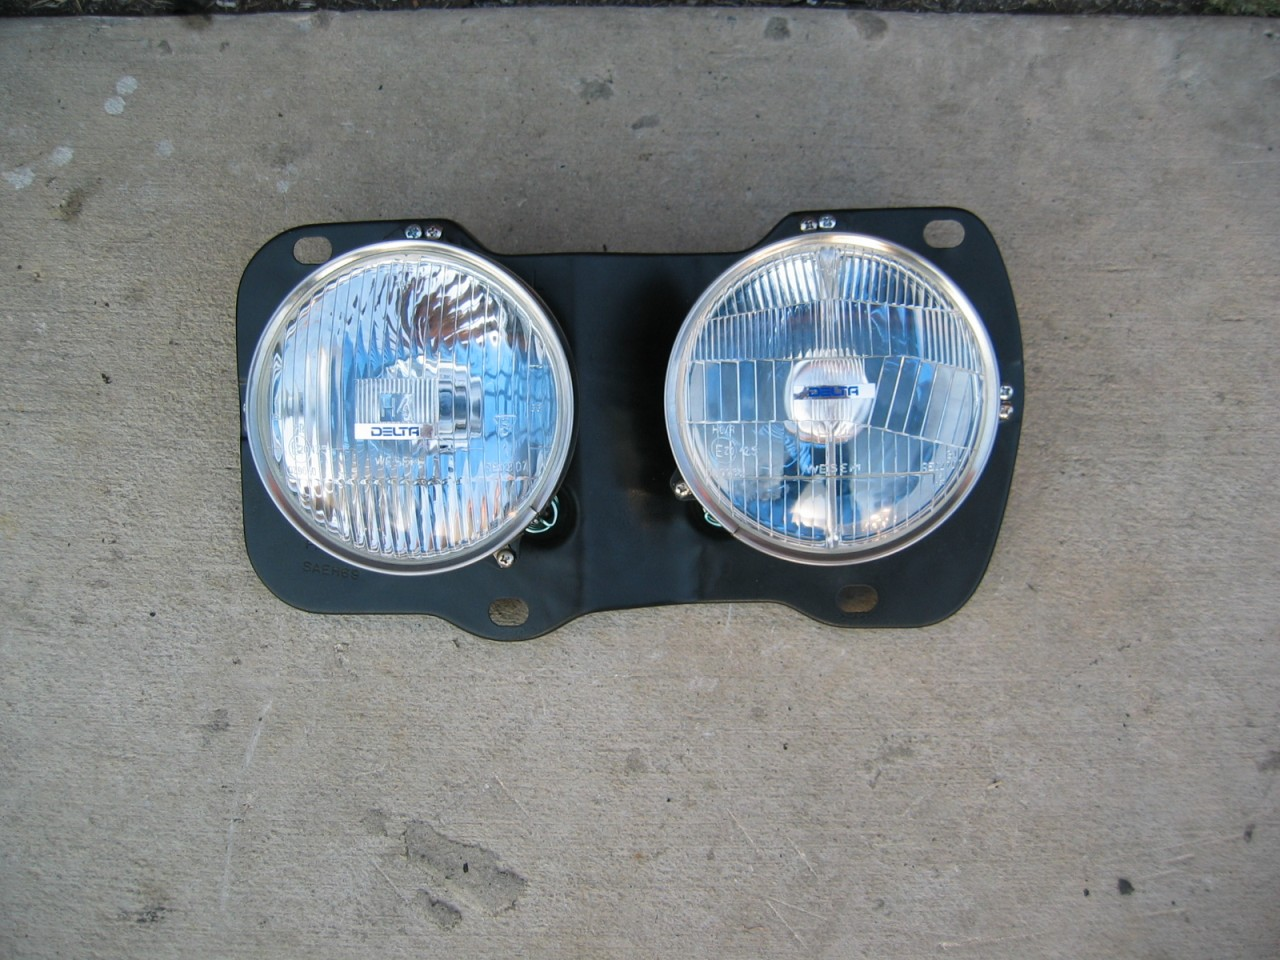 Restoration Projects 1969 Firebird 1977 Trans Am 1954 Truck Bmw E34 Headlight Wiring I Removed The Old T3 Headlights From My Car And Modified Existing Metal Buckets To Accept New H4 Lens Assemblies Purchased